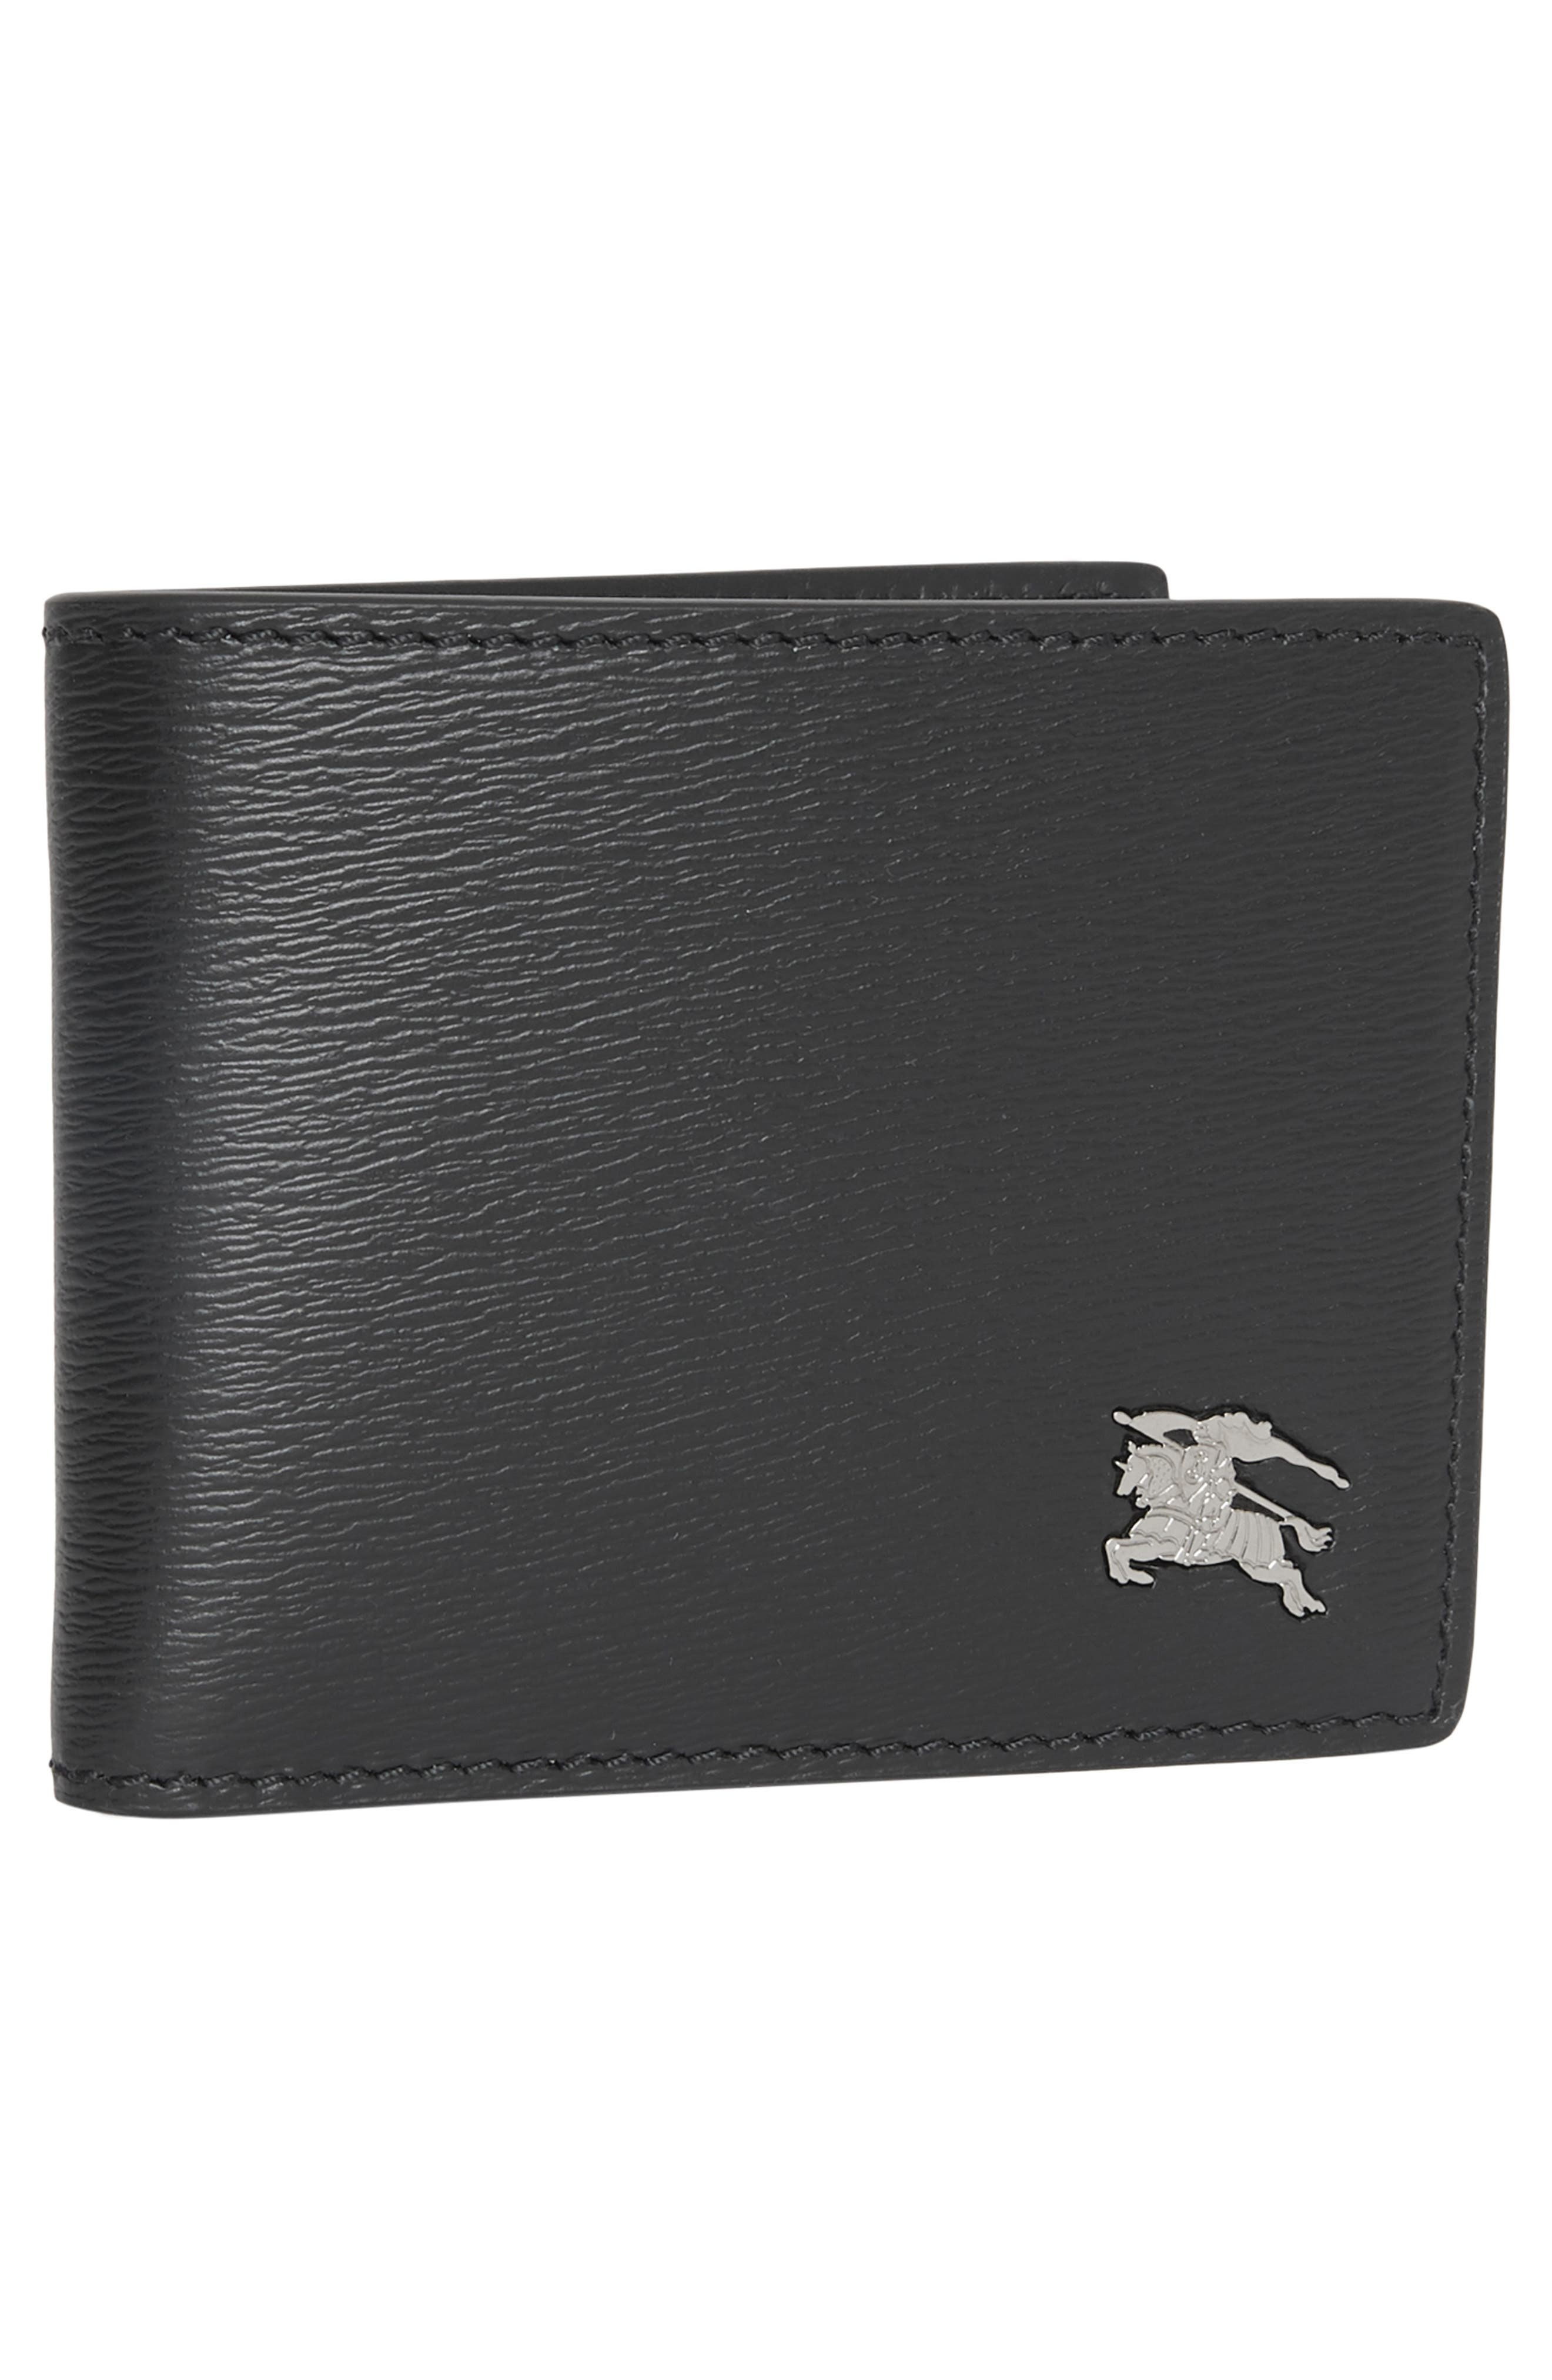 Leather Bifold Wallet,                             Alternate thumbnail 5, color,                             BLACK